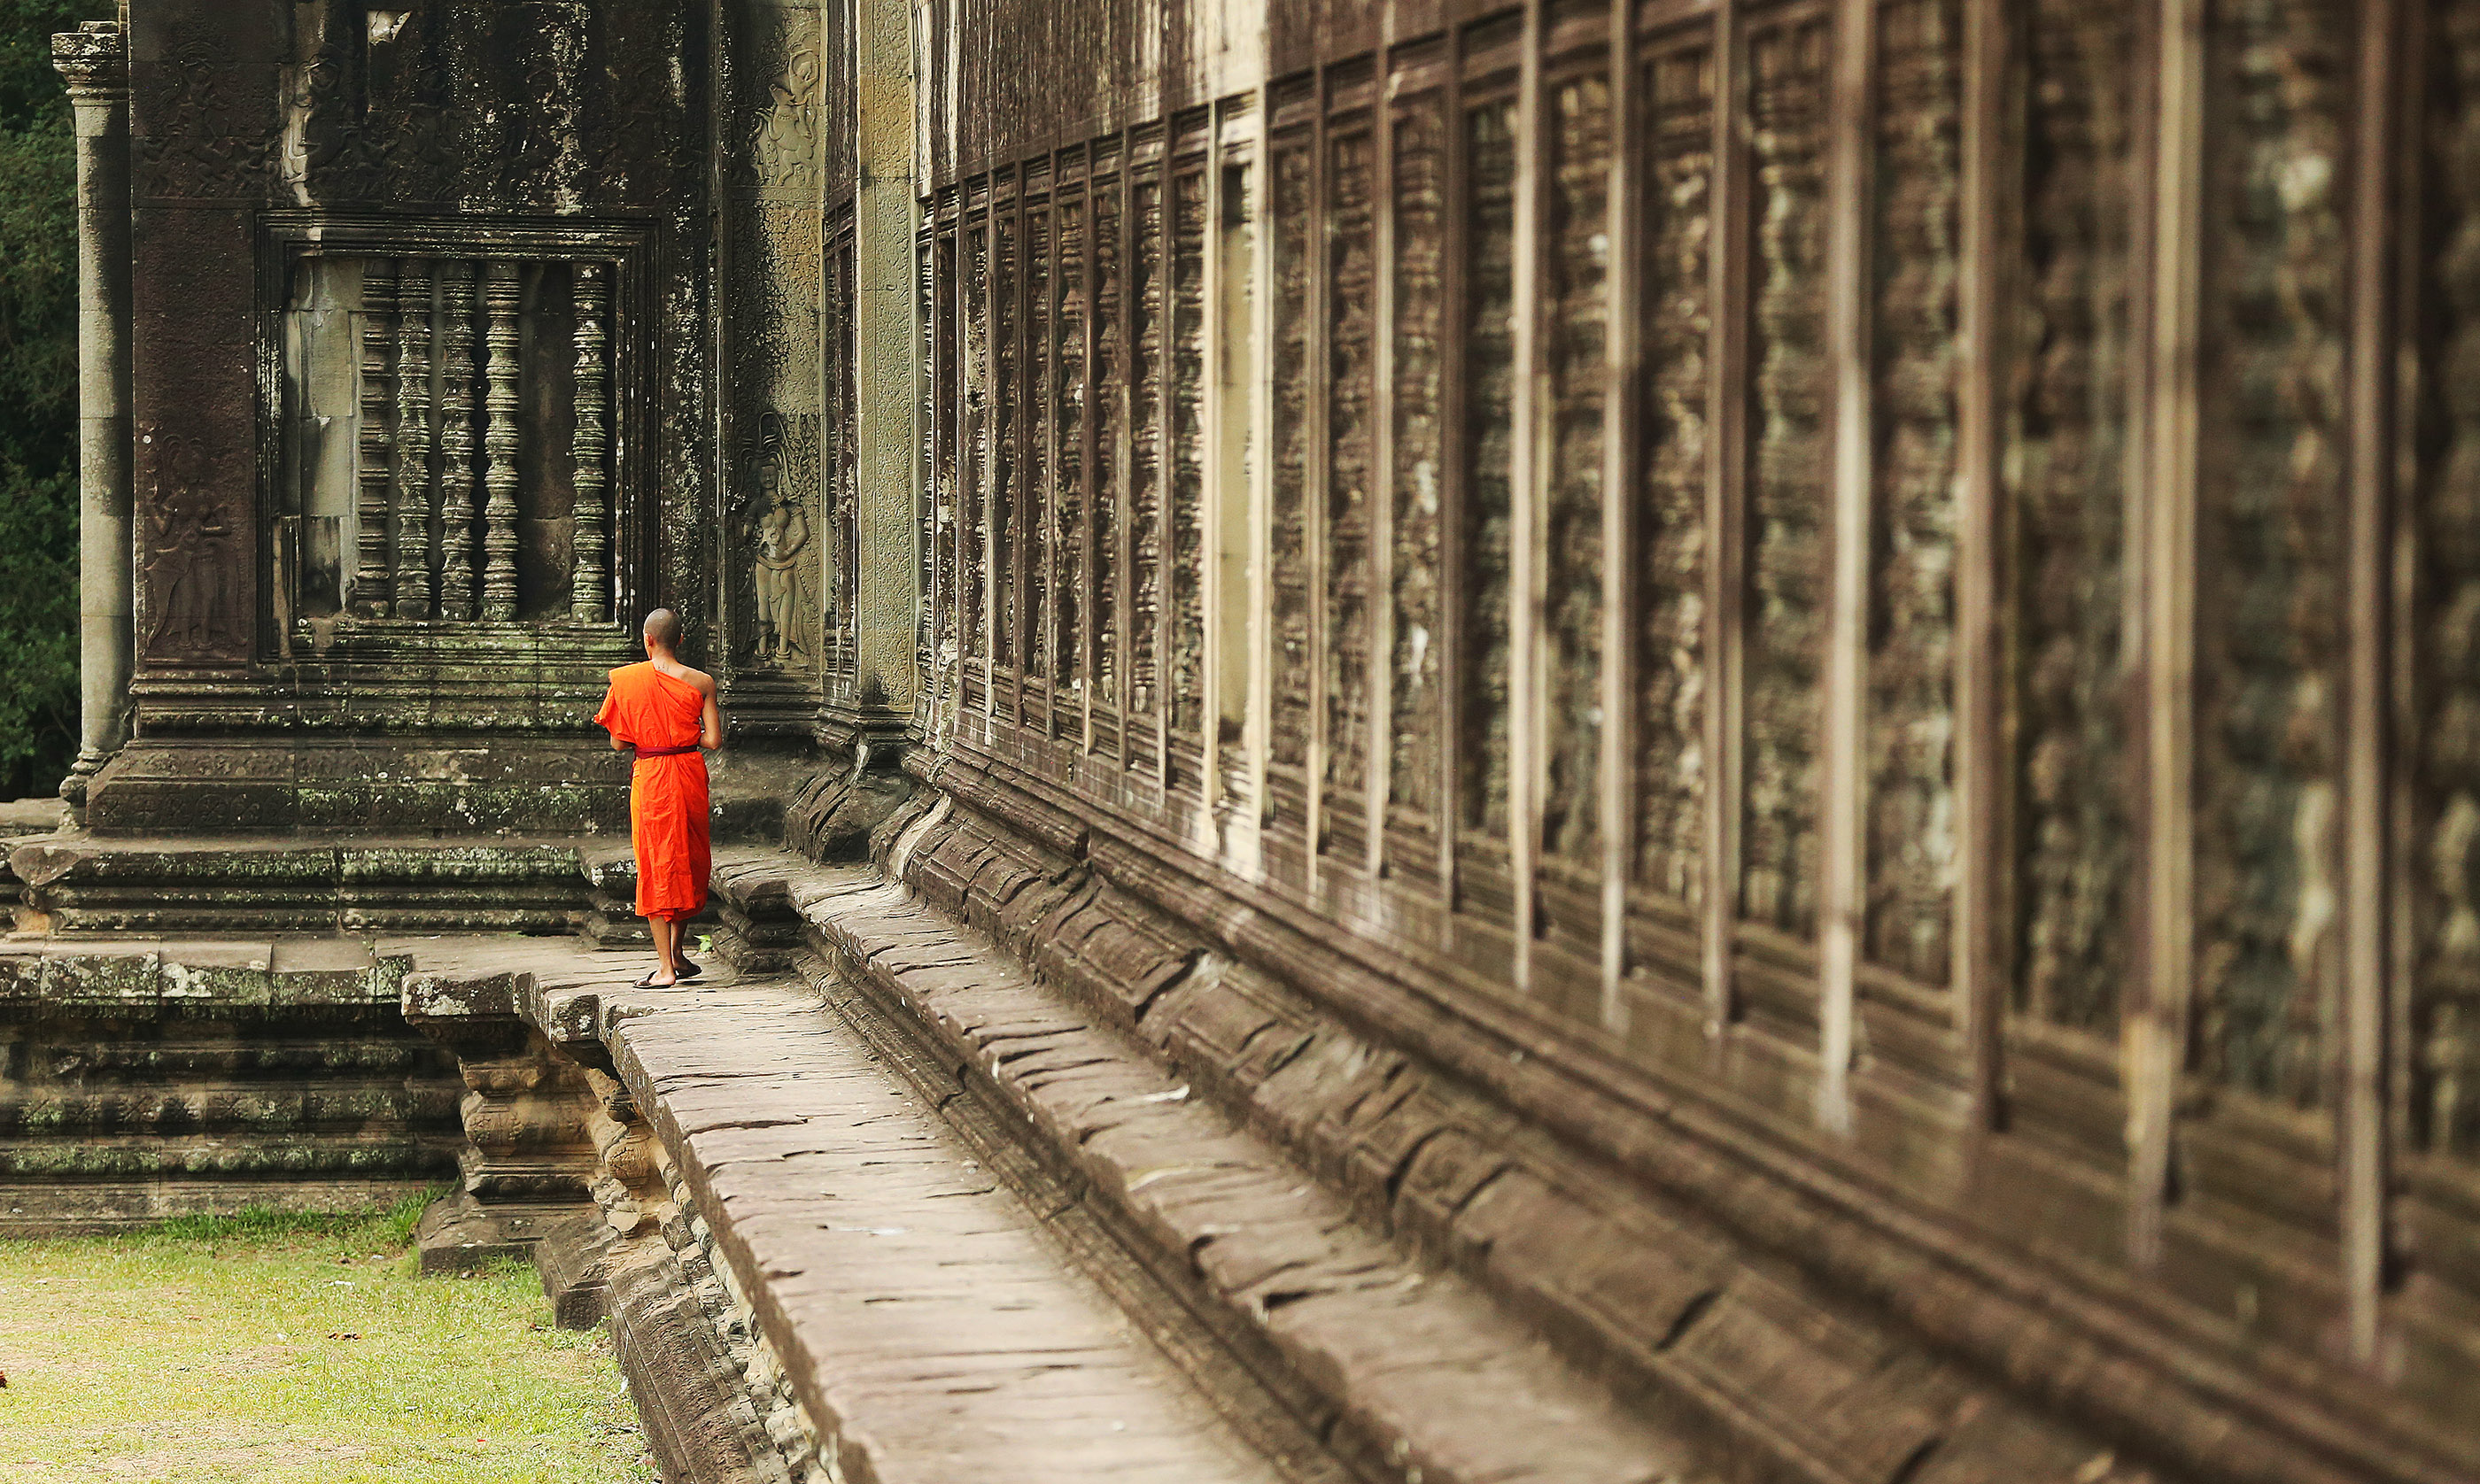 A Buddhist monk walks around Angkor Wat in Cambodia on April 28, 2018. Angkor Wat is a 12th century temple complex in Cambodia and the largest religious monument in the world.